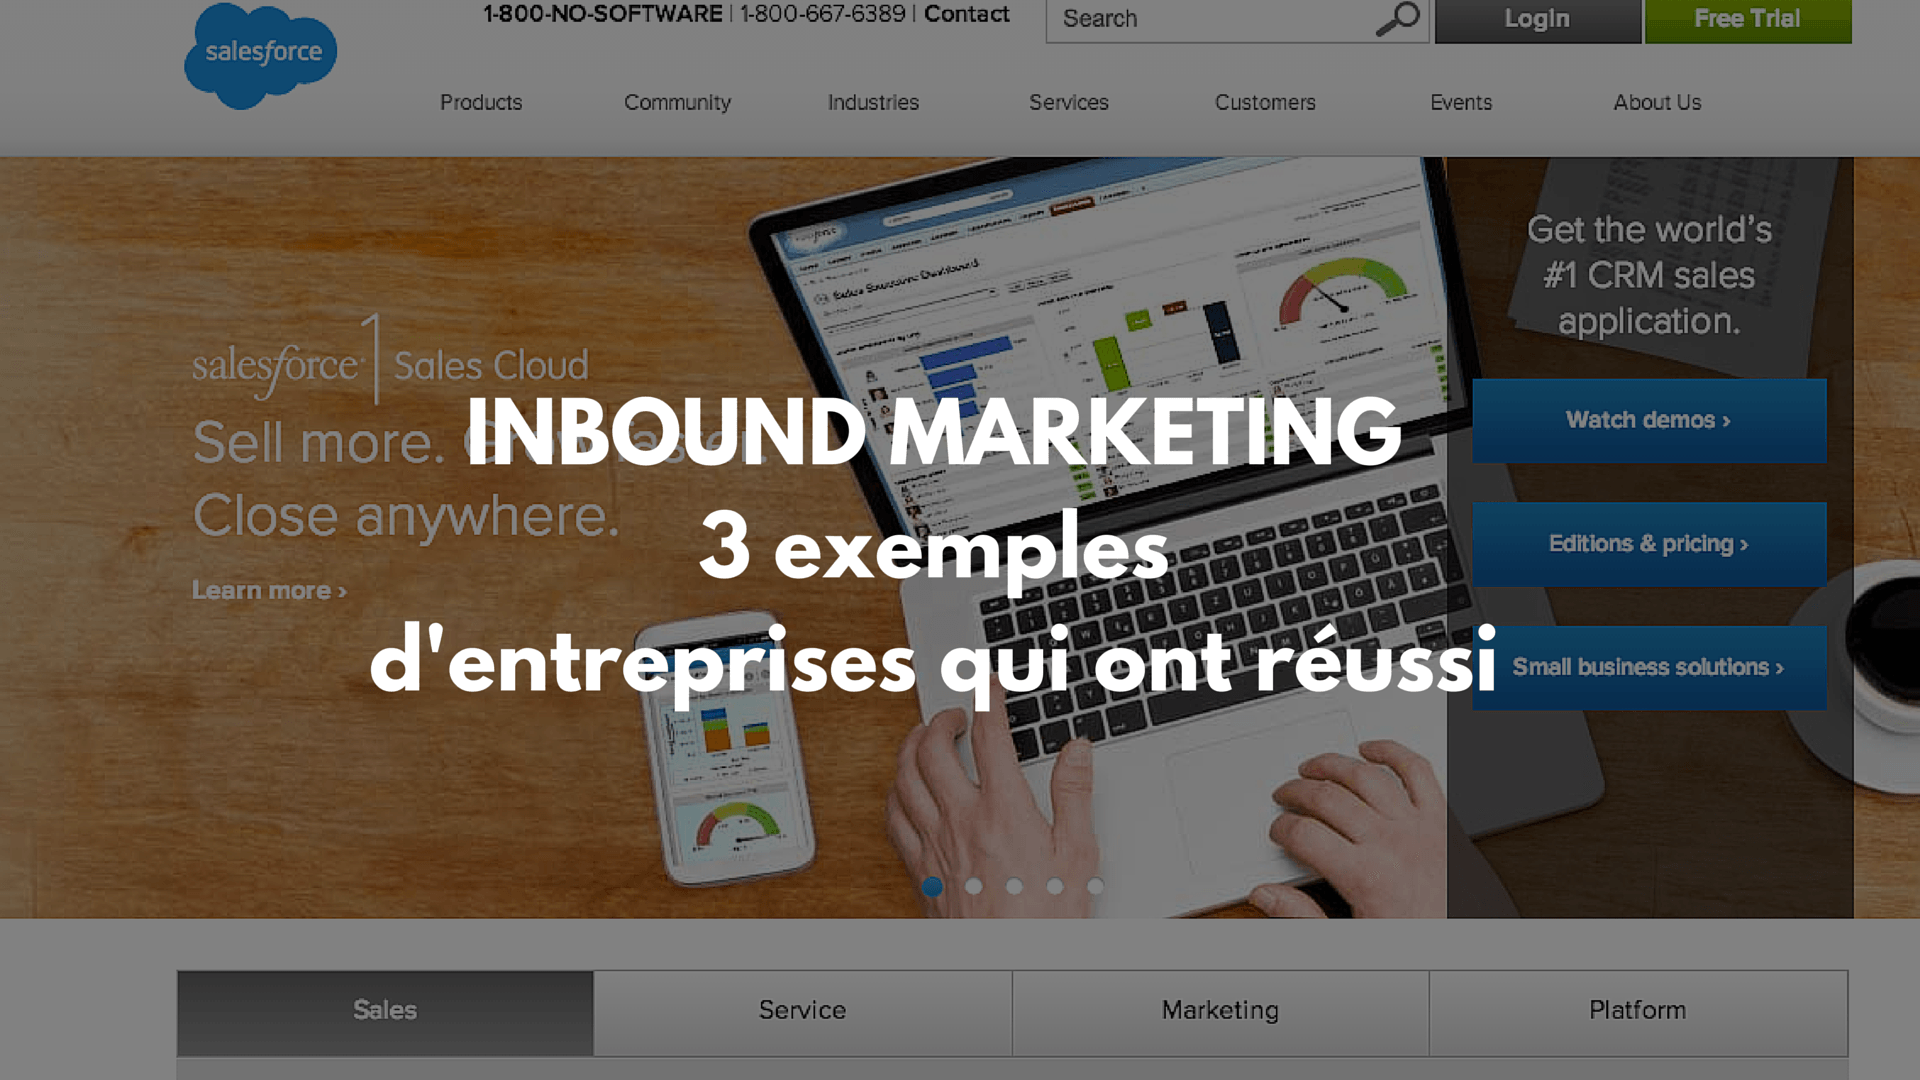 entreprises qui utilisent l'Inbound Marketing